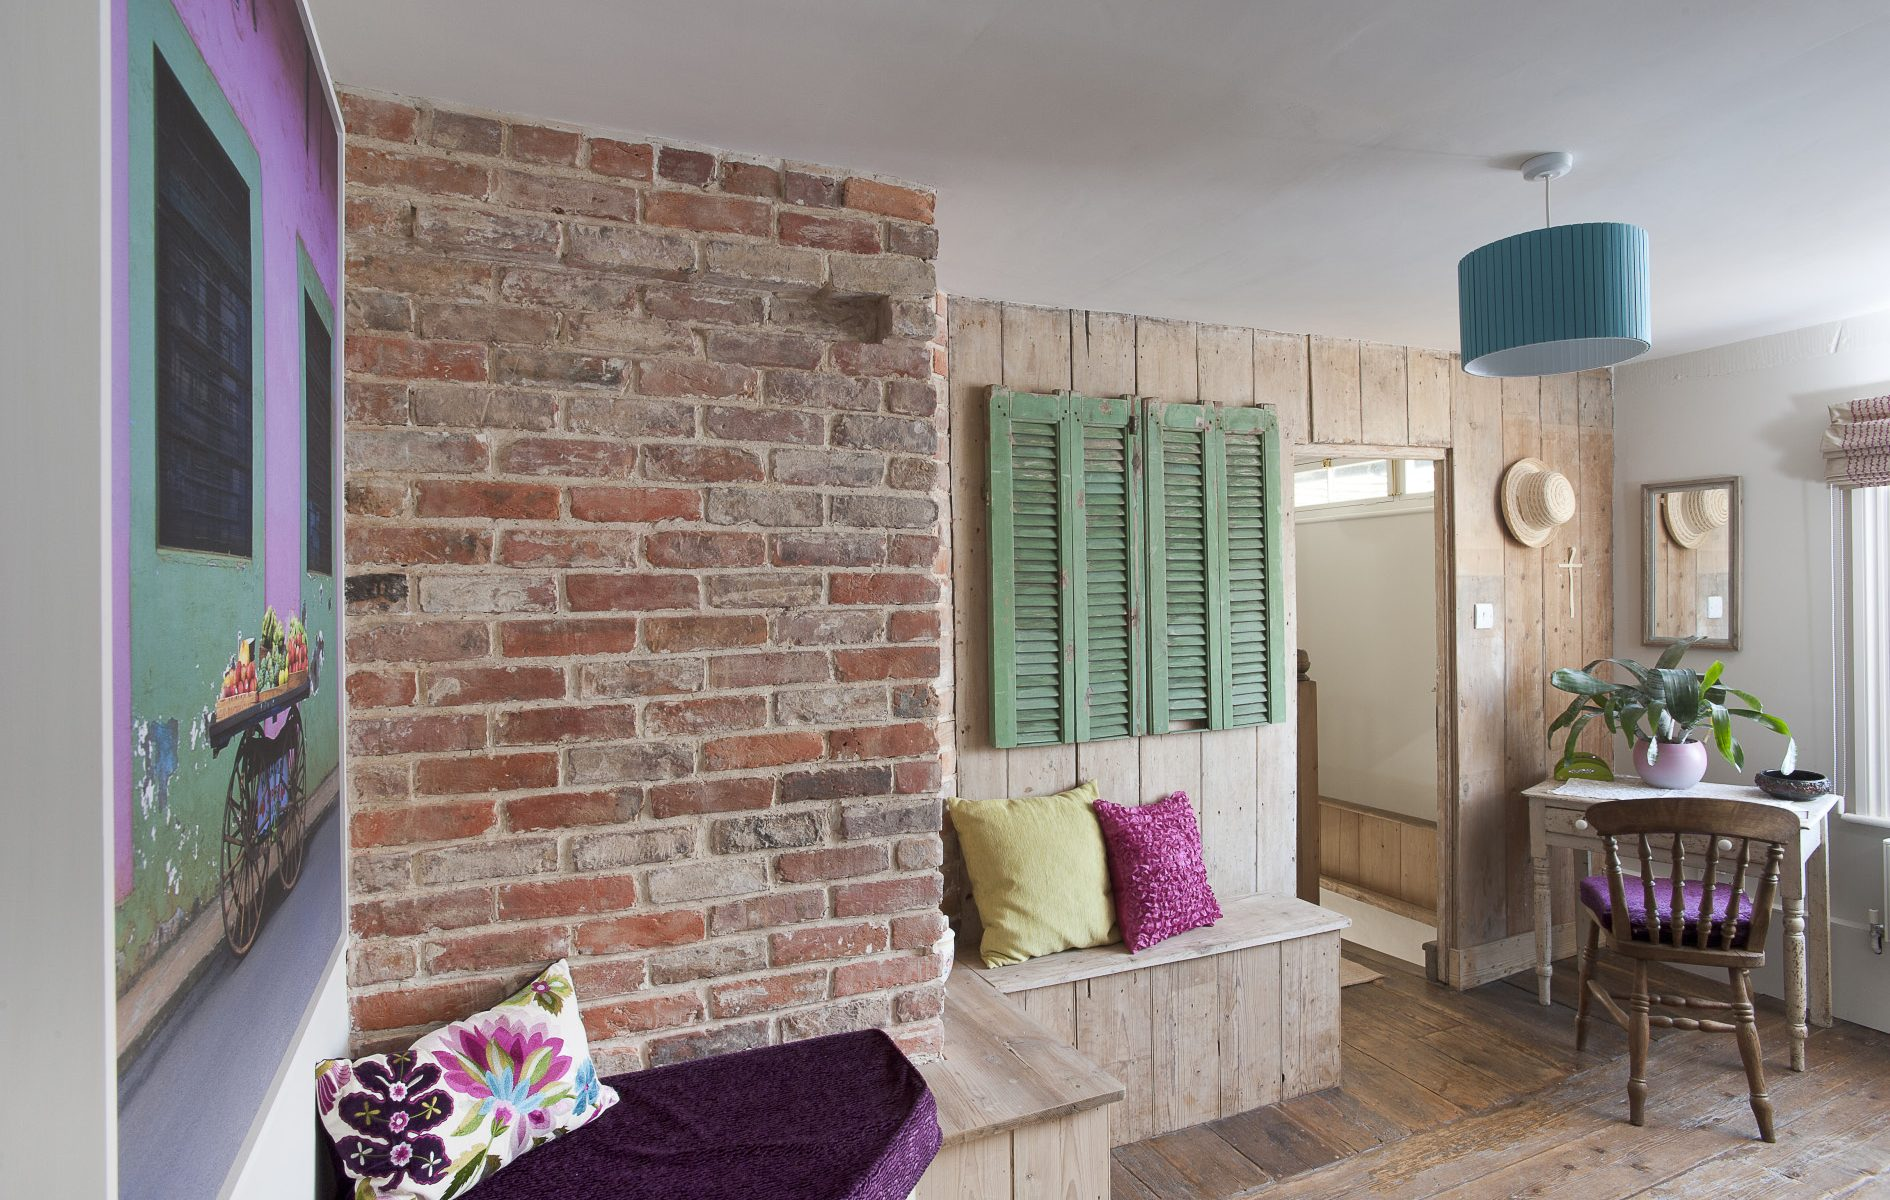 In the spacious study green French shutters have been used as cupboard doors. Where pipes have been 'boxed in' seats have been created